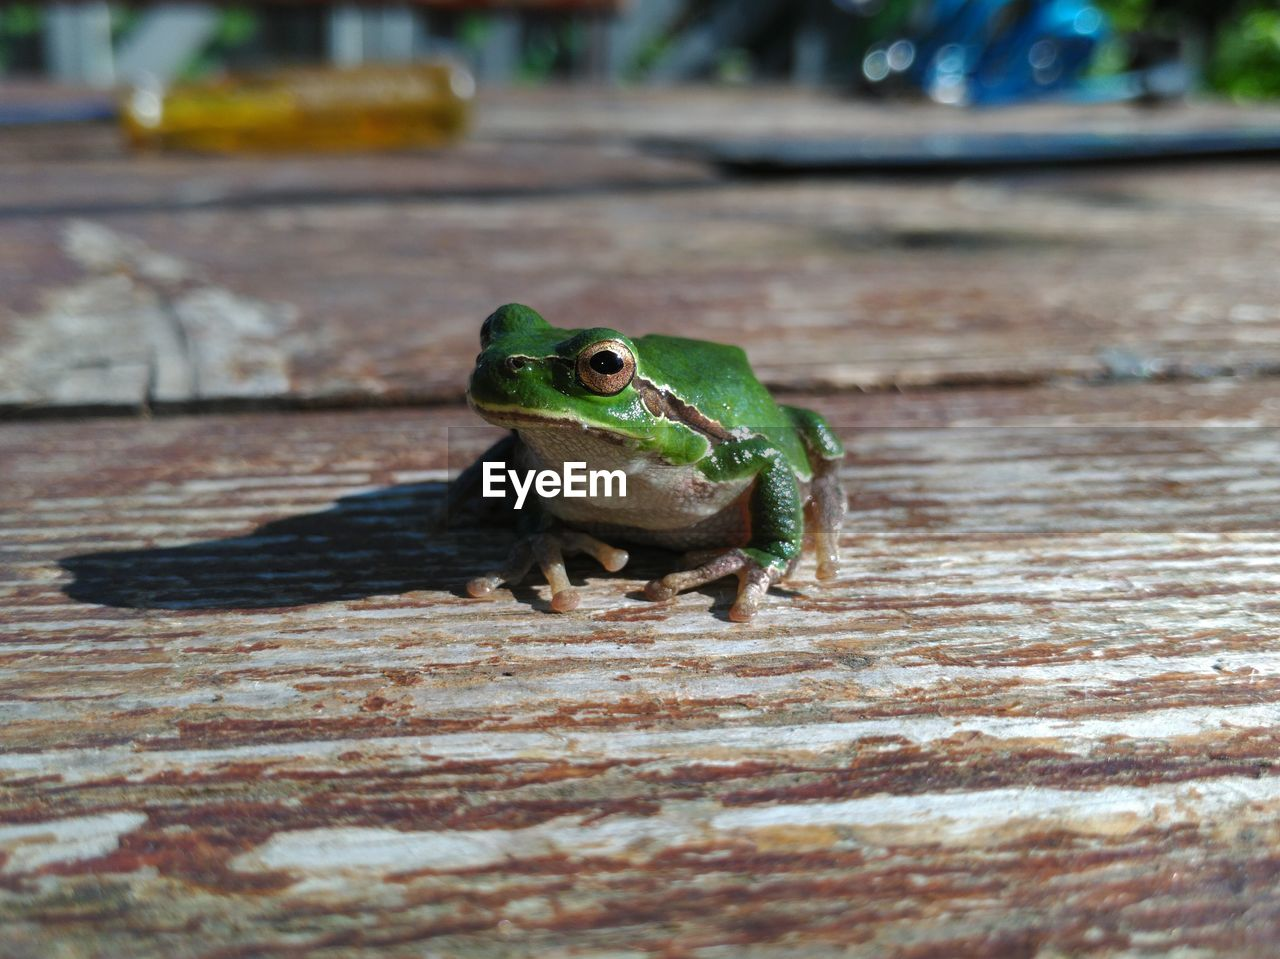 one animal, animal themes, animals in the wild, animal, animal wildlife, green color, vertebrate, day, amphibian, selective focus, close-up, no people, focus on foreground, frog, reptile, outdoors, wood - material, nature, lizard, footpath, animal eye